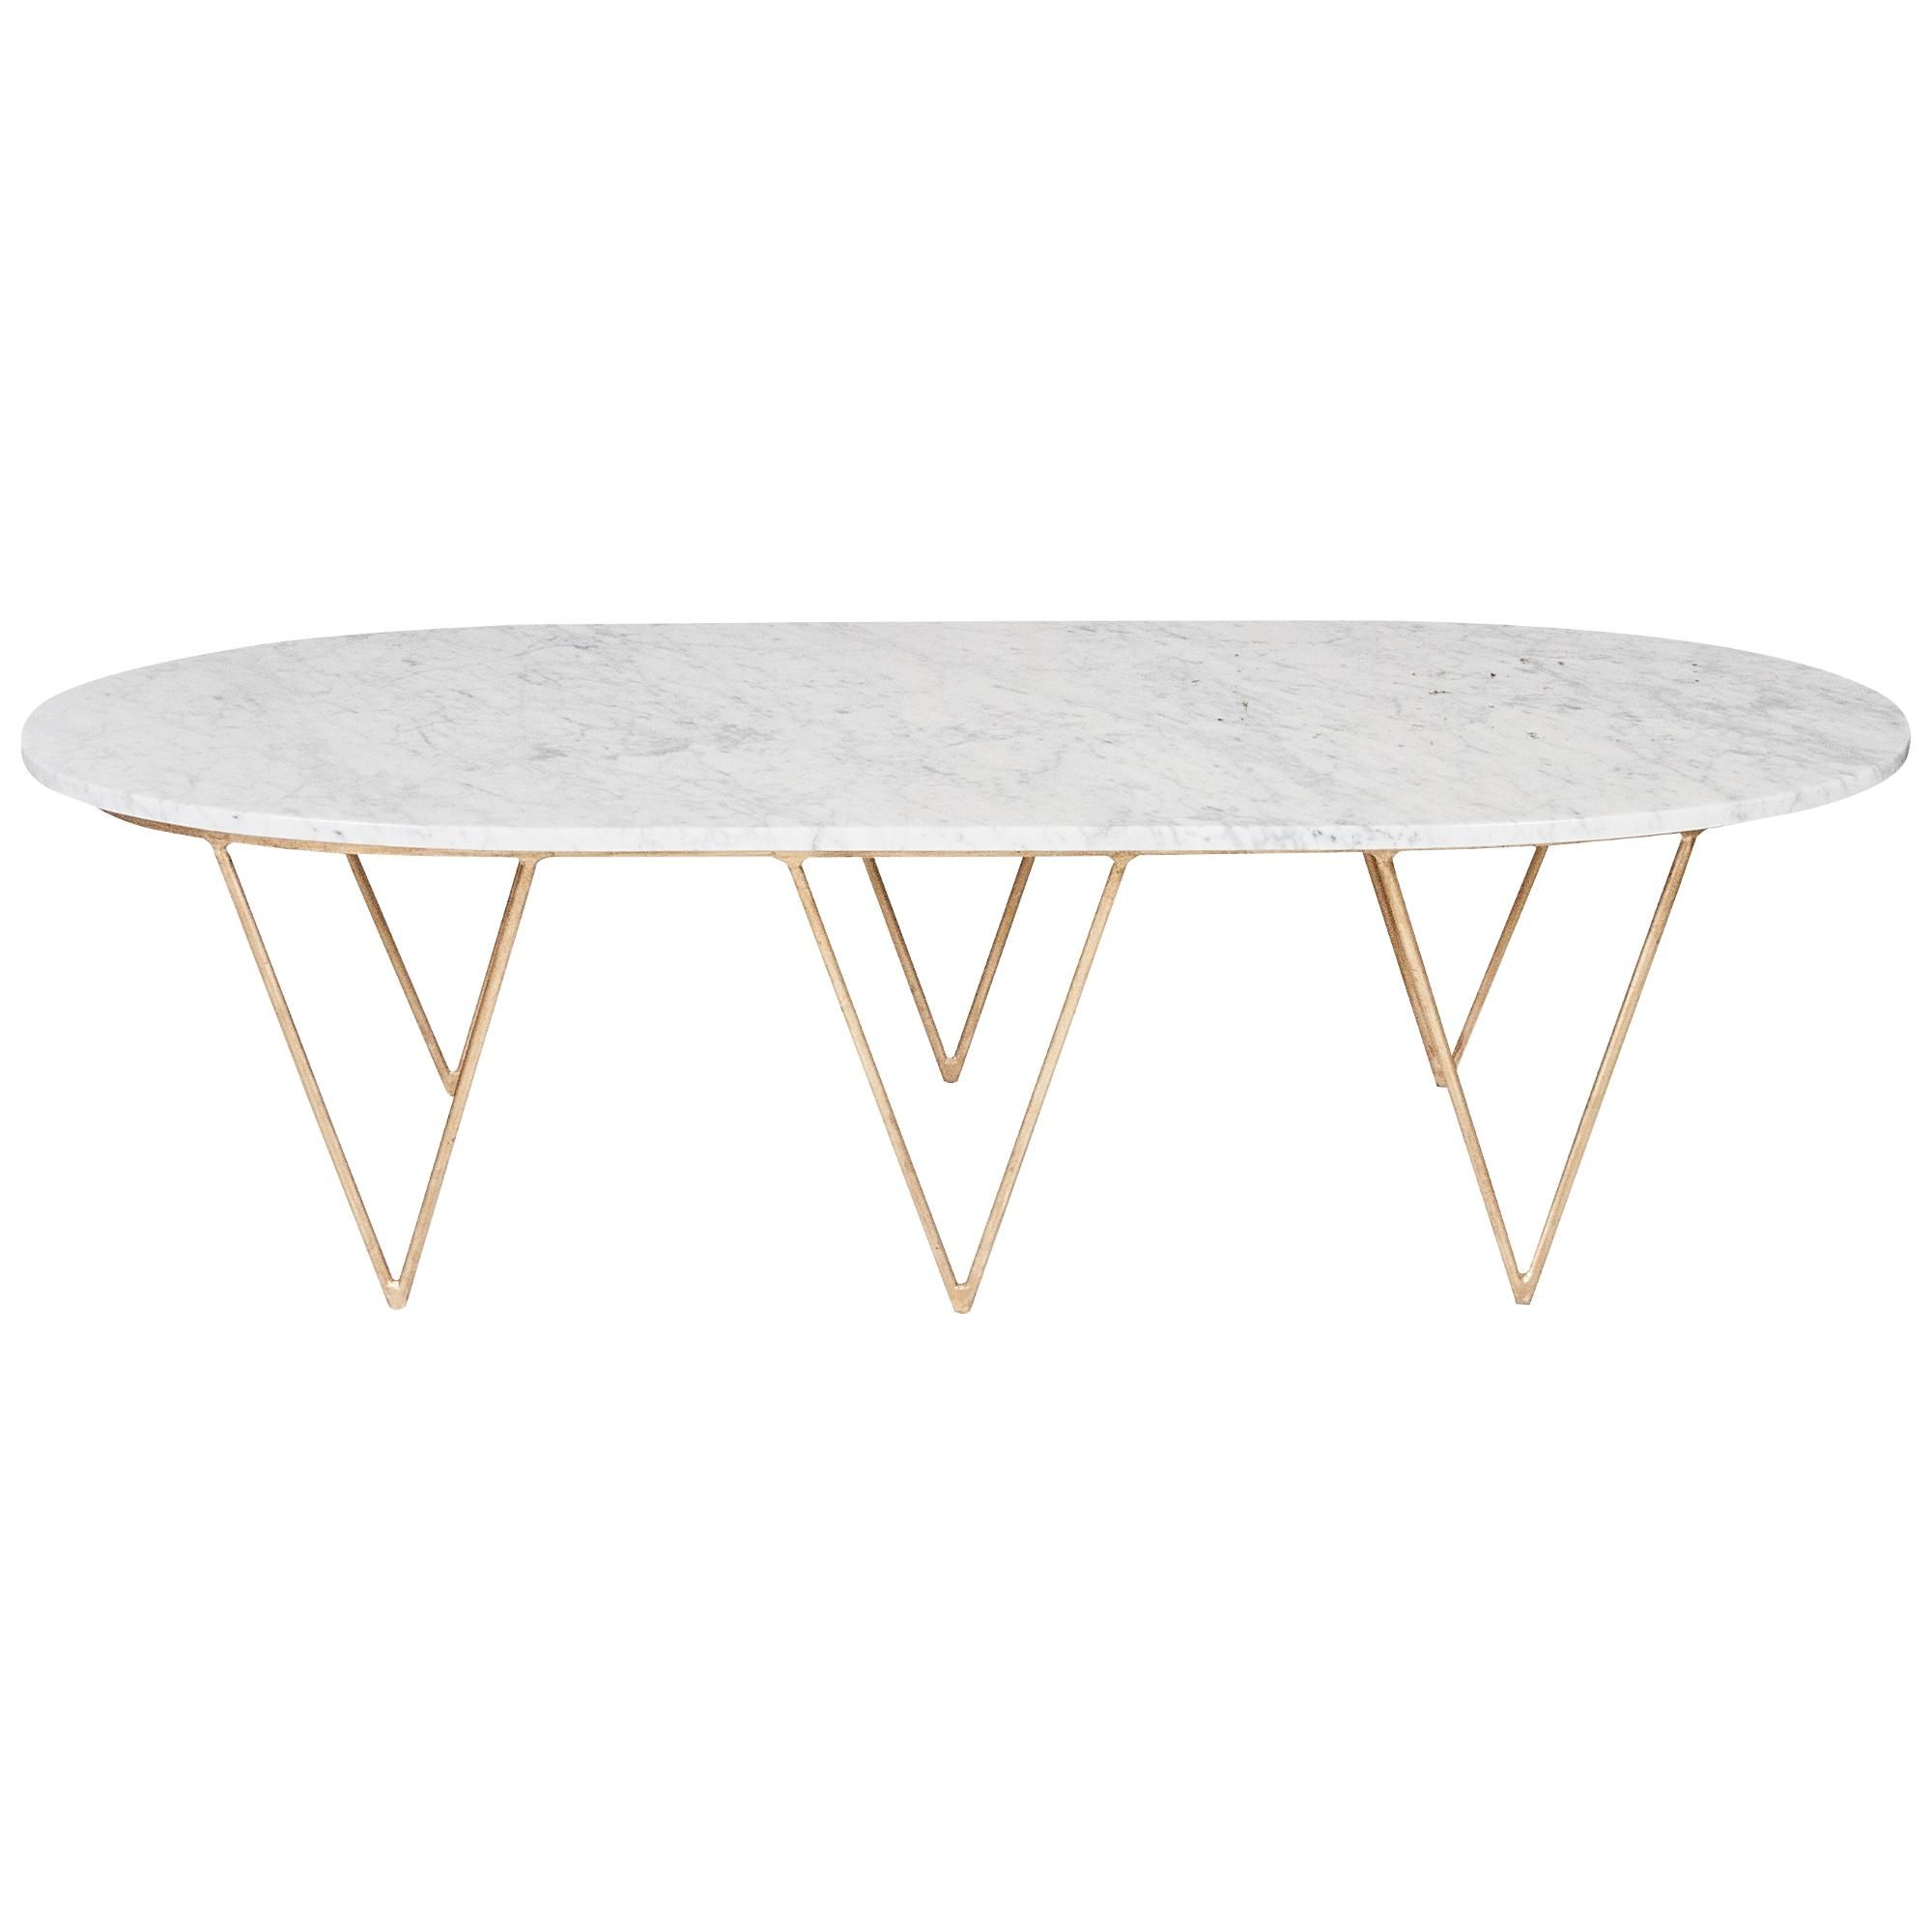 Diron Furniture As A Modern Contemporary Home Furniture Manufacturer In China Mainly Focus On Internatio Marble Top Coffee Table Gold Coffee Table Coffee Table [ 2000 x 2000 Pixel ]